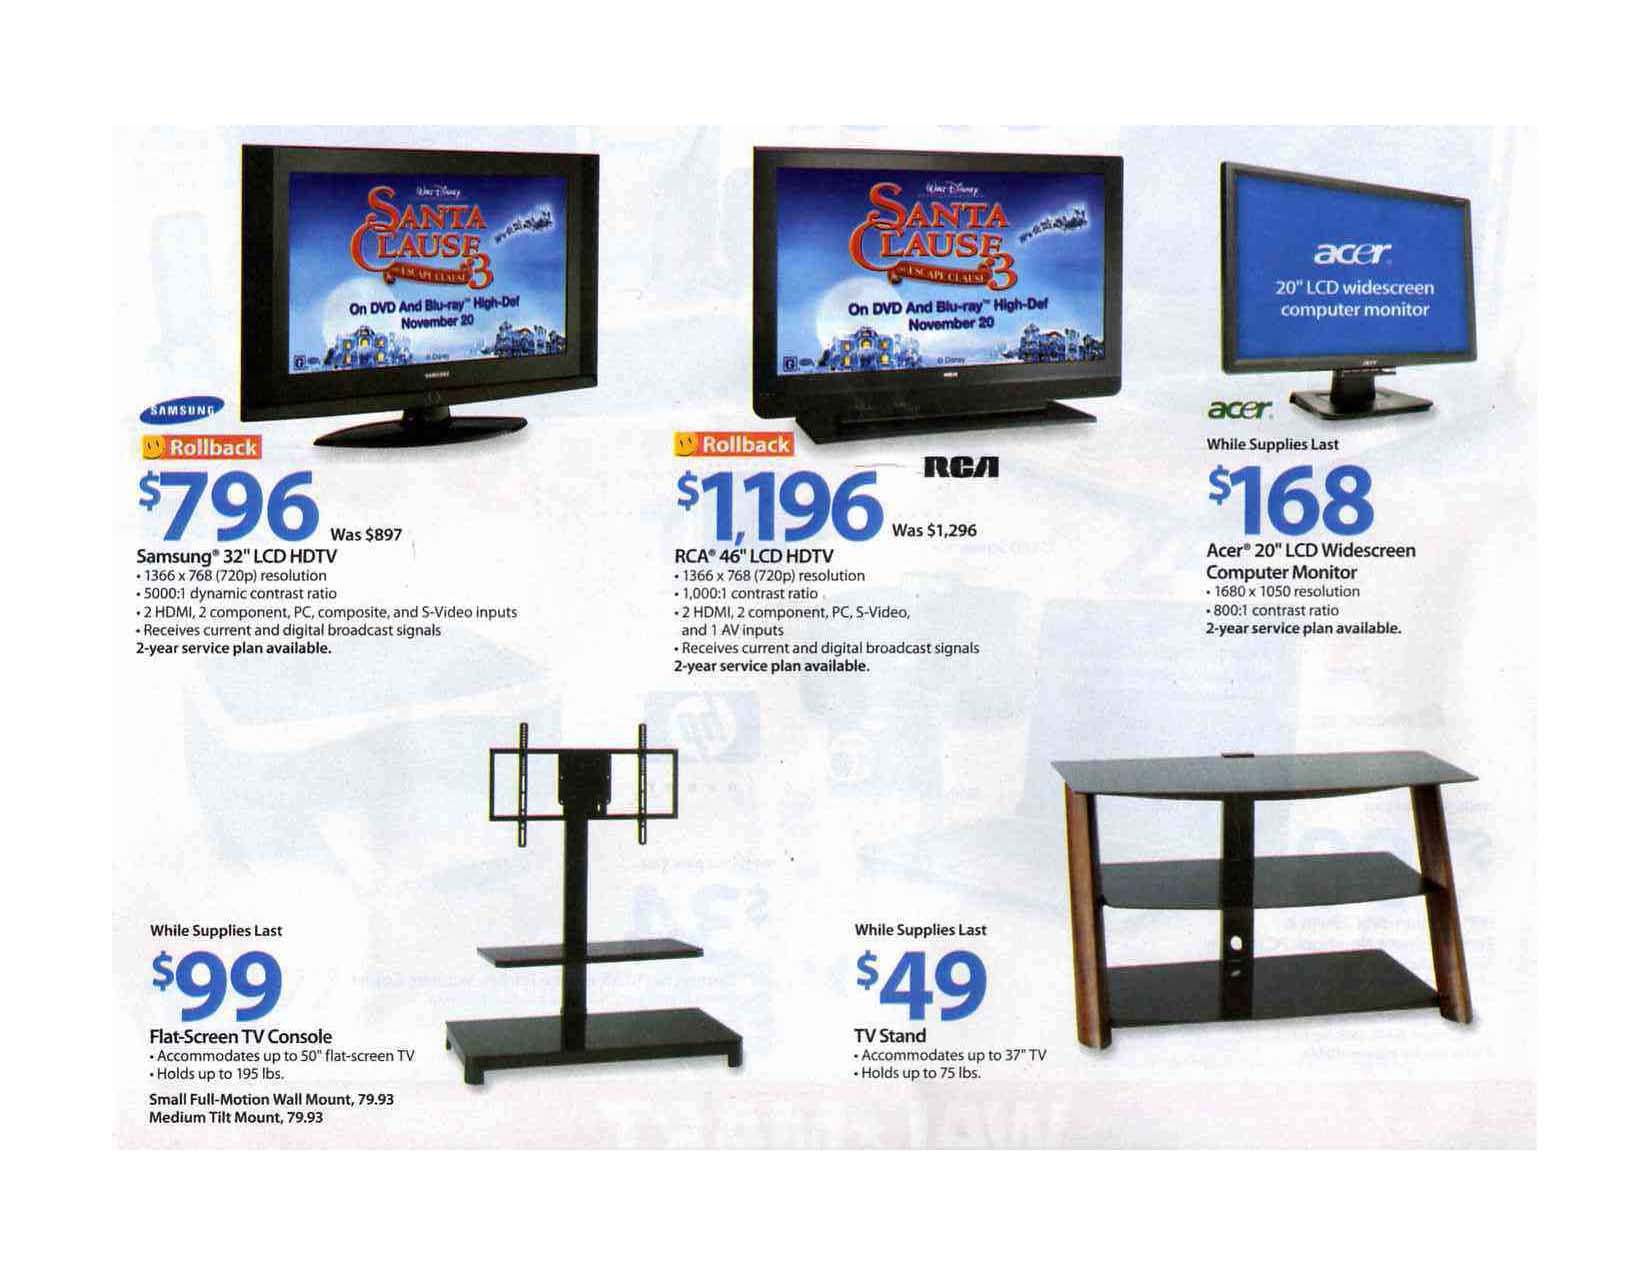 Here is the Black Friday ad for Wal-Mart, day after Thanksgiving: